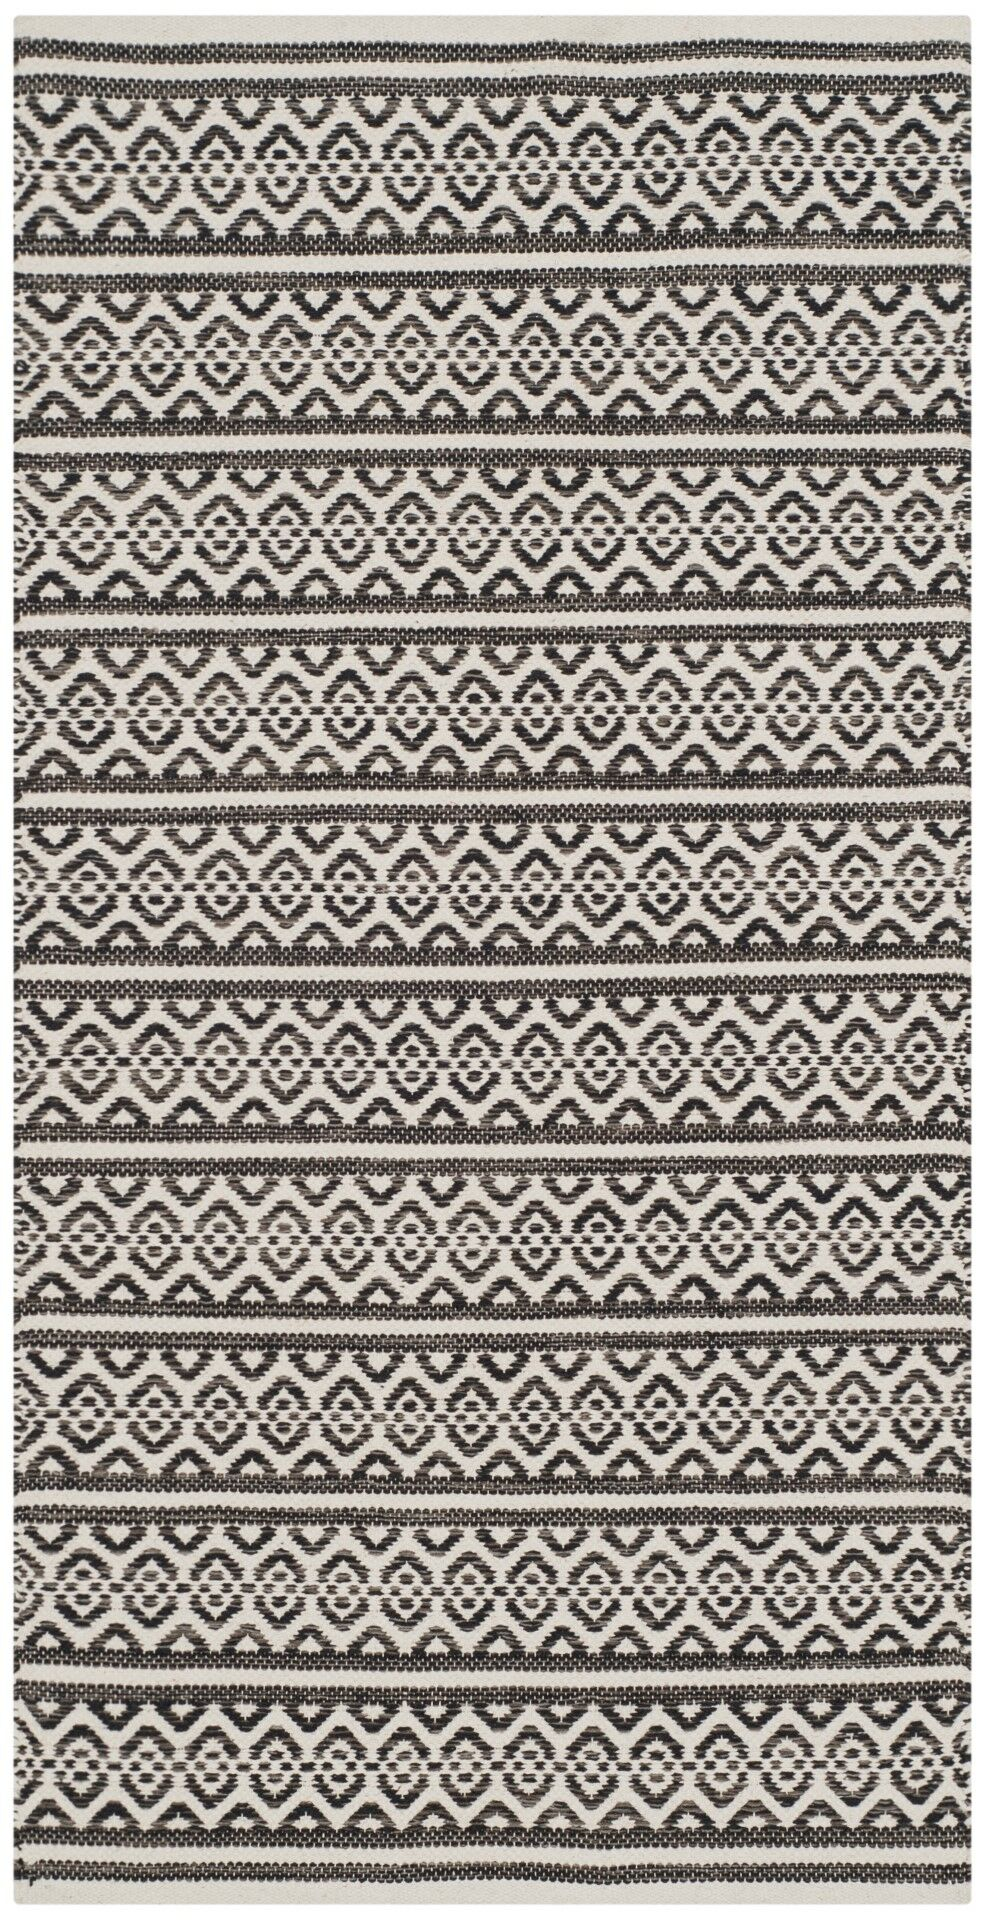 Oxbow Hand-Woven Cotton Ivory/Black Area Rug Rug Size: Square 6'